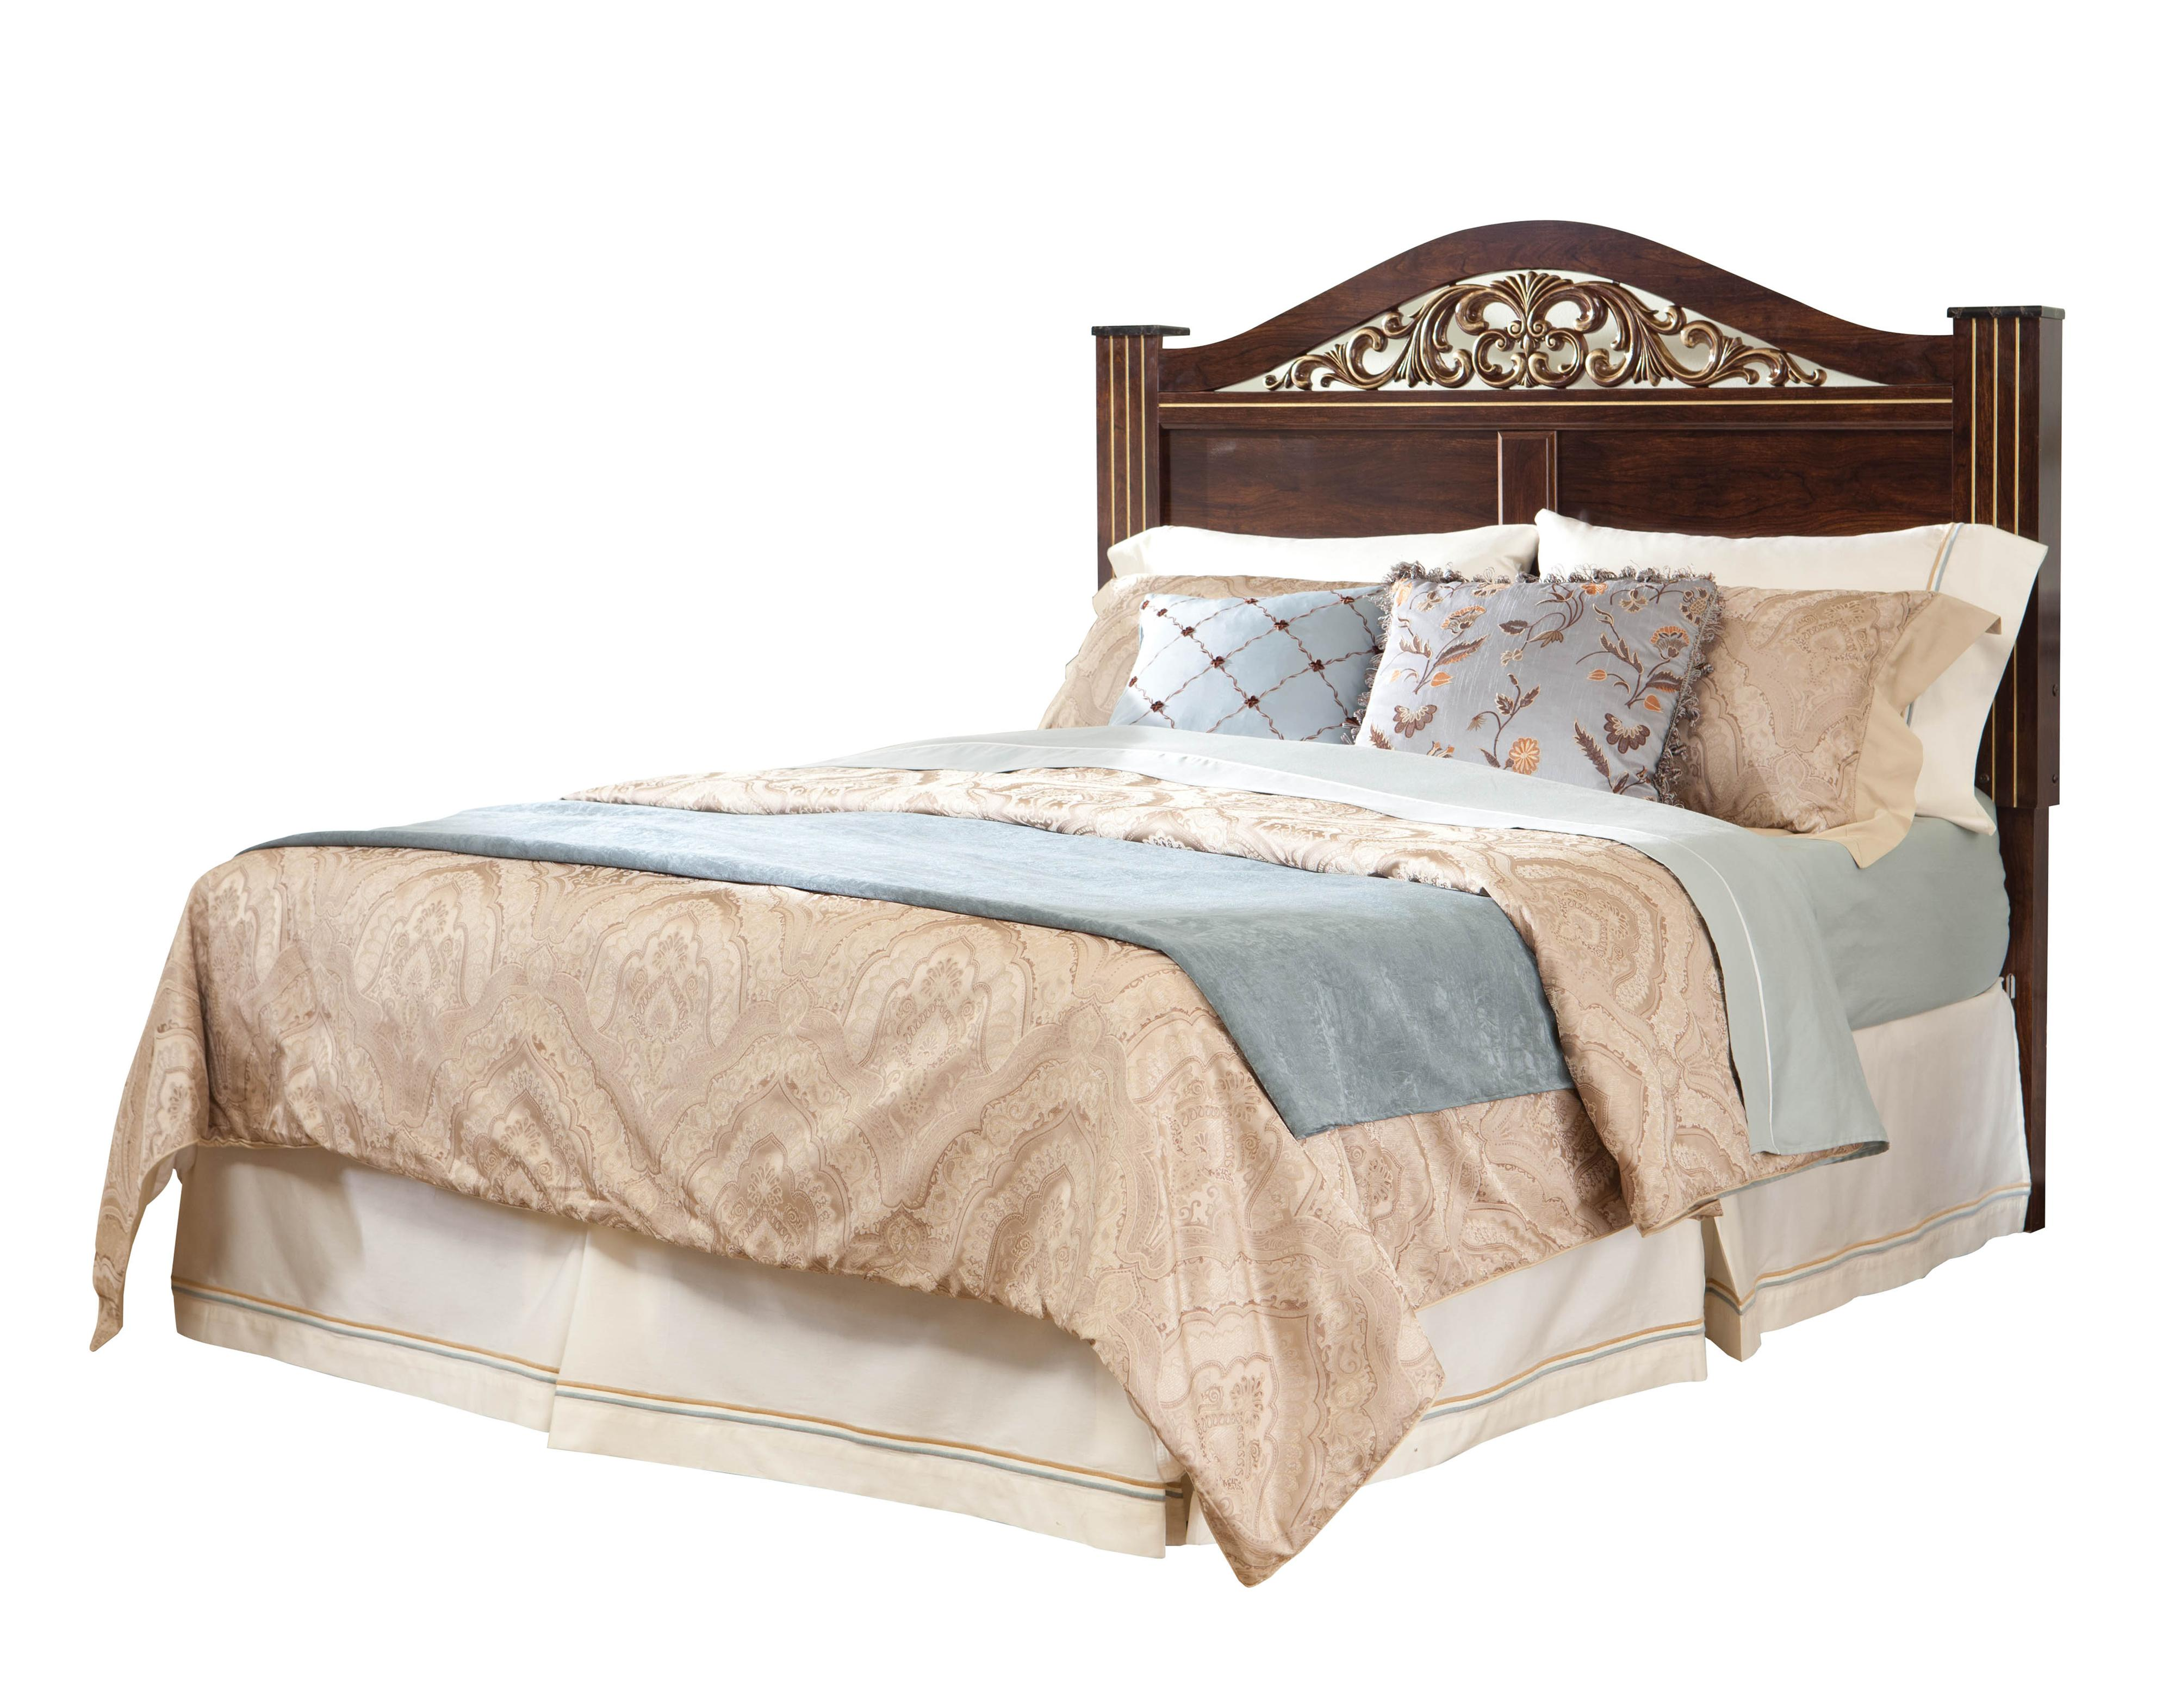 Standard Furniture Odessa Full/Queen Headboard - Item Number: 69502